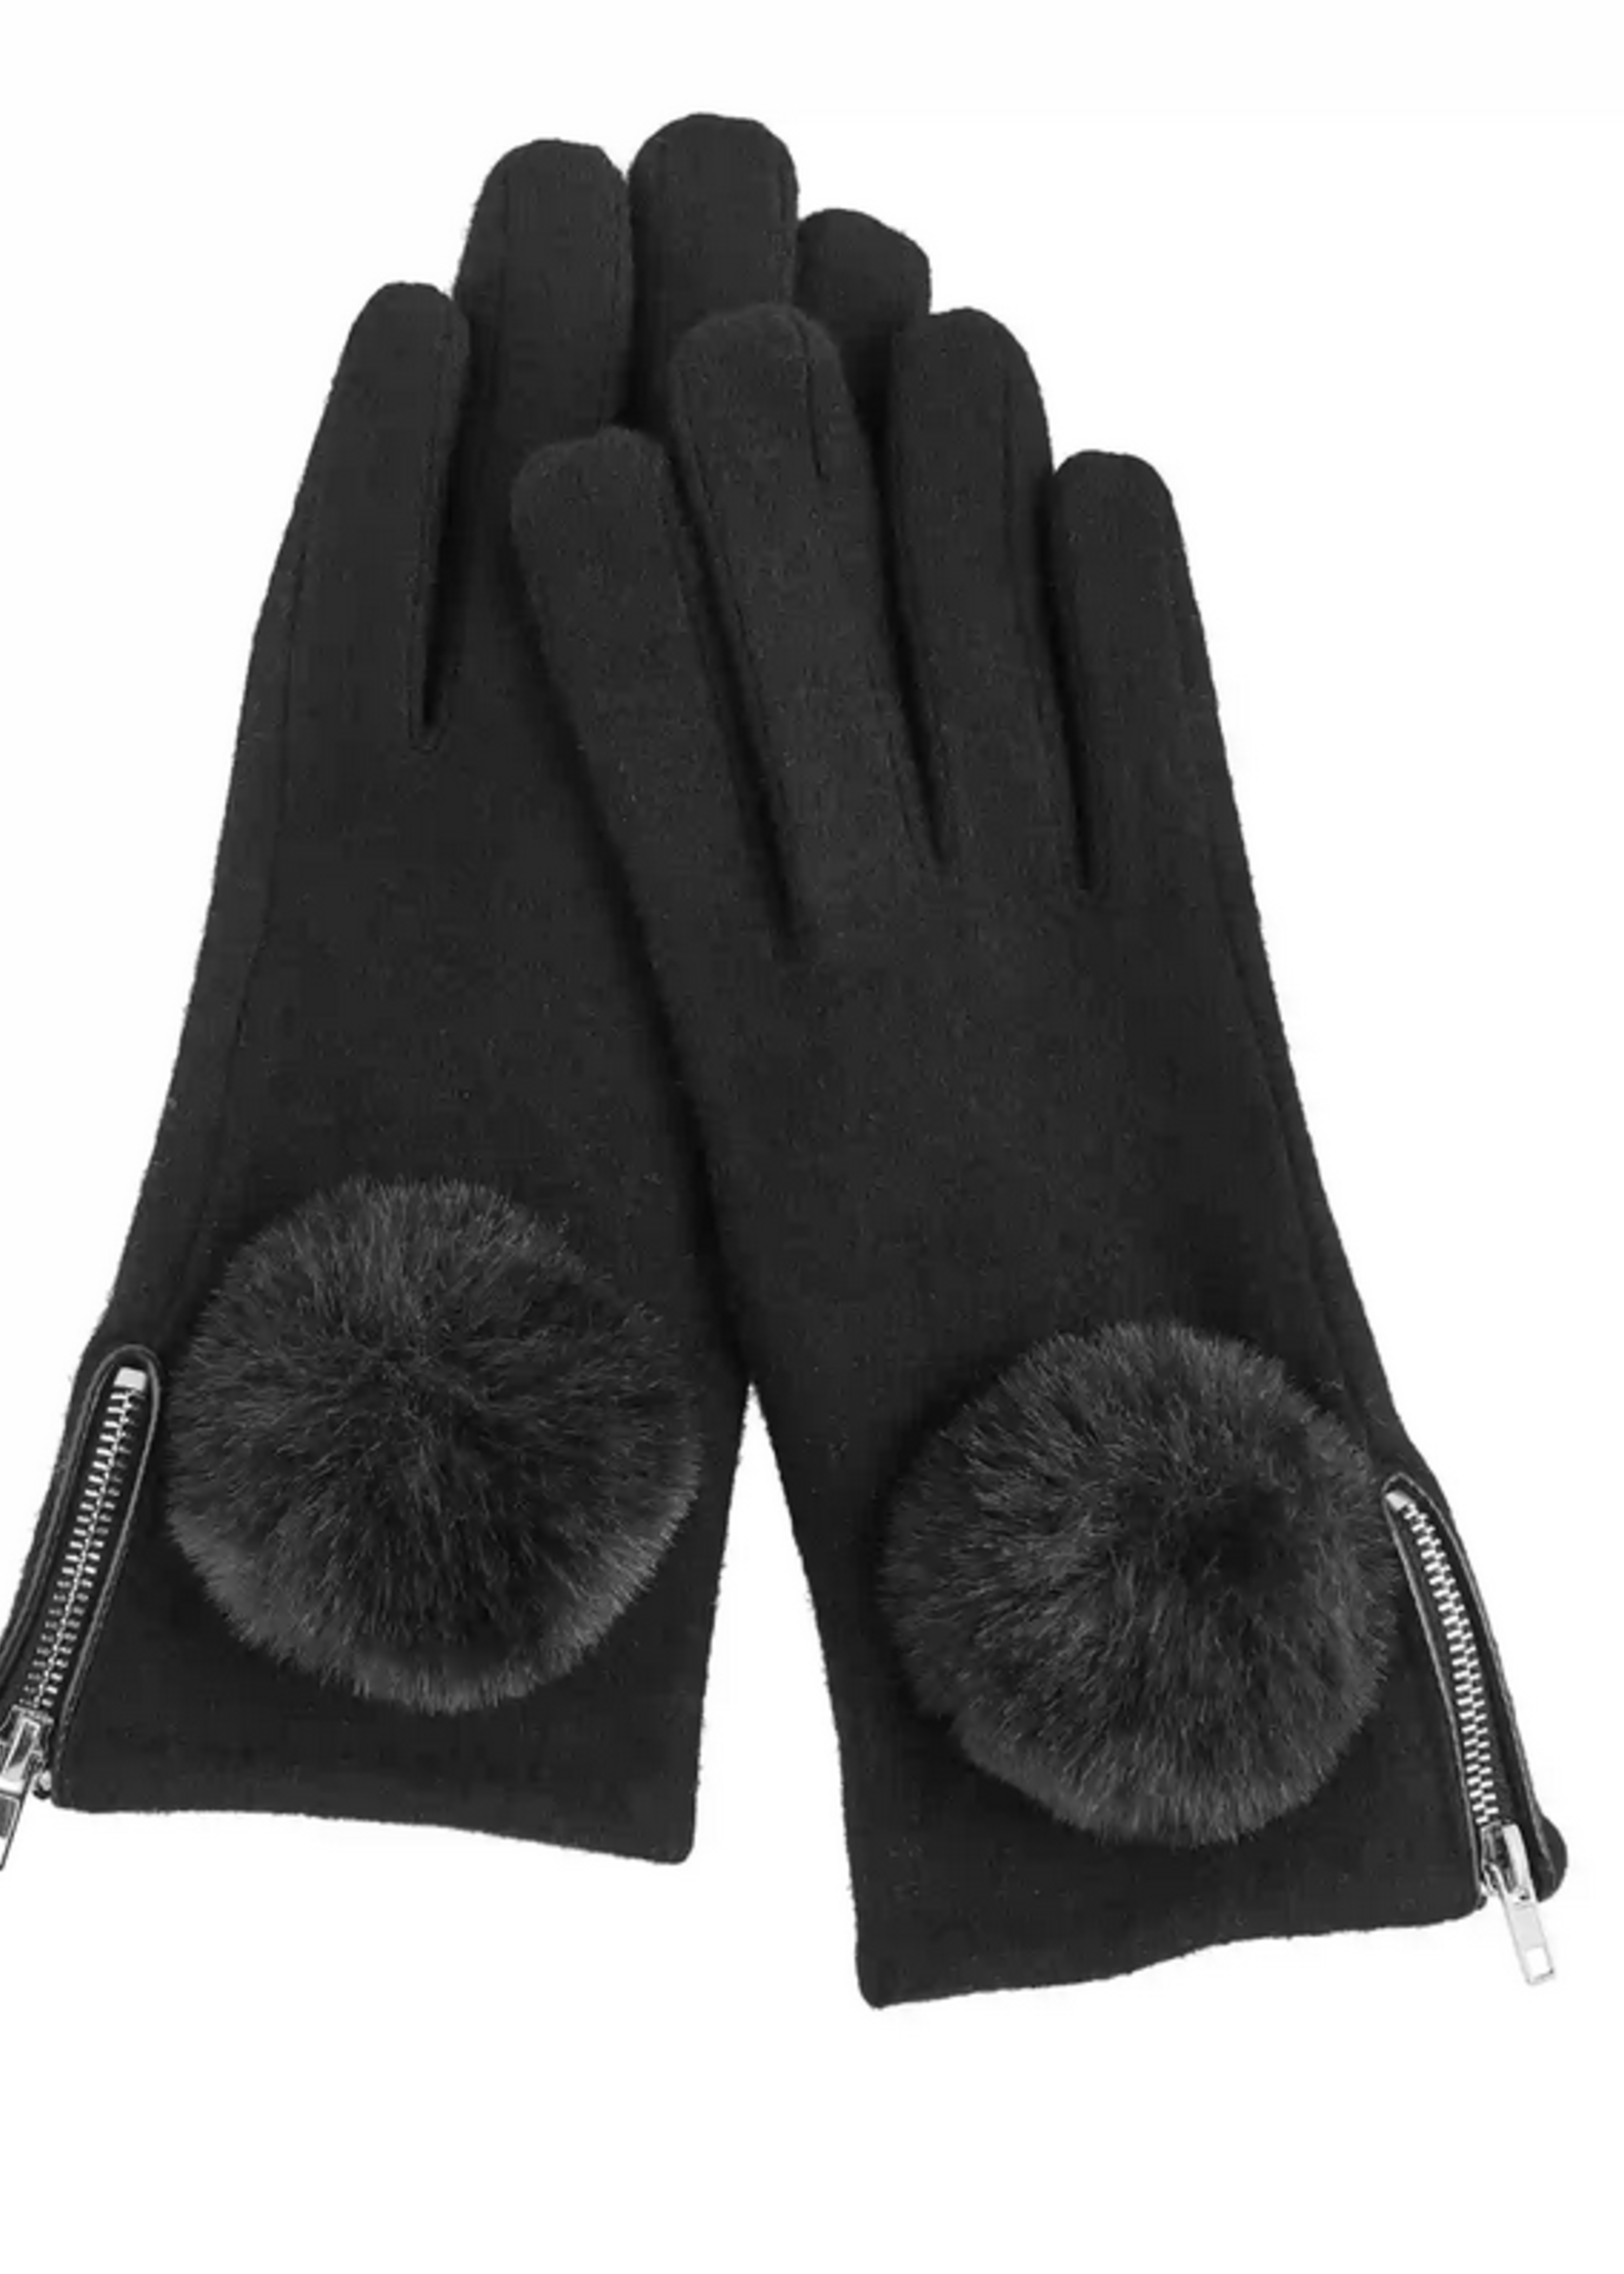 Elitaire Boutique Zippered Poof Glove in Black